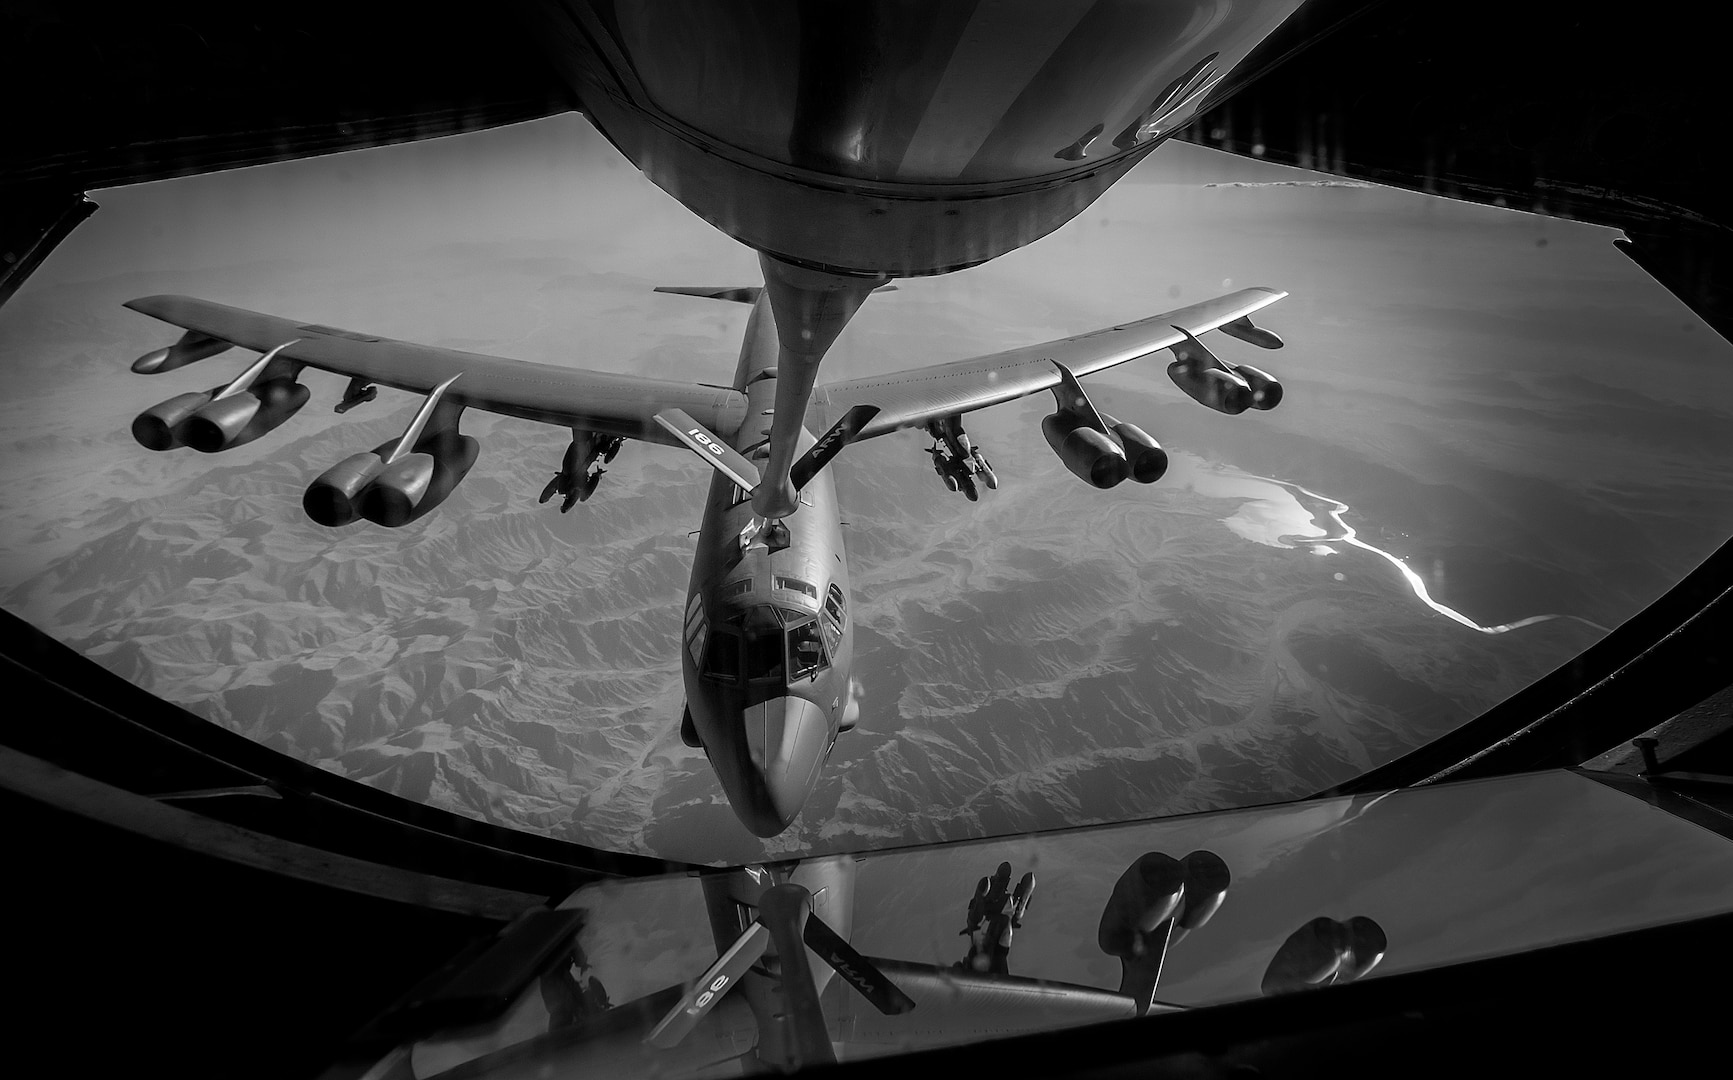 A U.S. Air Force B-52 Stratofortress receives fuel from a 340th Expeditionary Air Refueling Squadron KC-135 Stratotanker during a flight in support of Operation Resolute Support June 6, 2017. The 340th EARS, part of U.S. Air Forces Central Command, is responsible for delivering fuel for U.S. and coalition forces, enabling a persistent 24/7 presence in the area of responsibility. (U.S. Air Force photo by Staff Sgt. Trevor T. McBride)